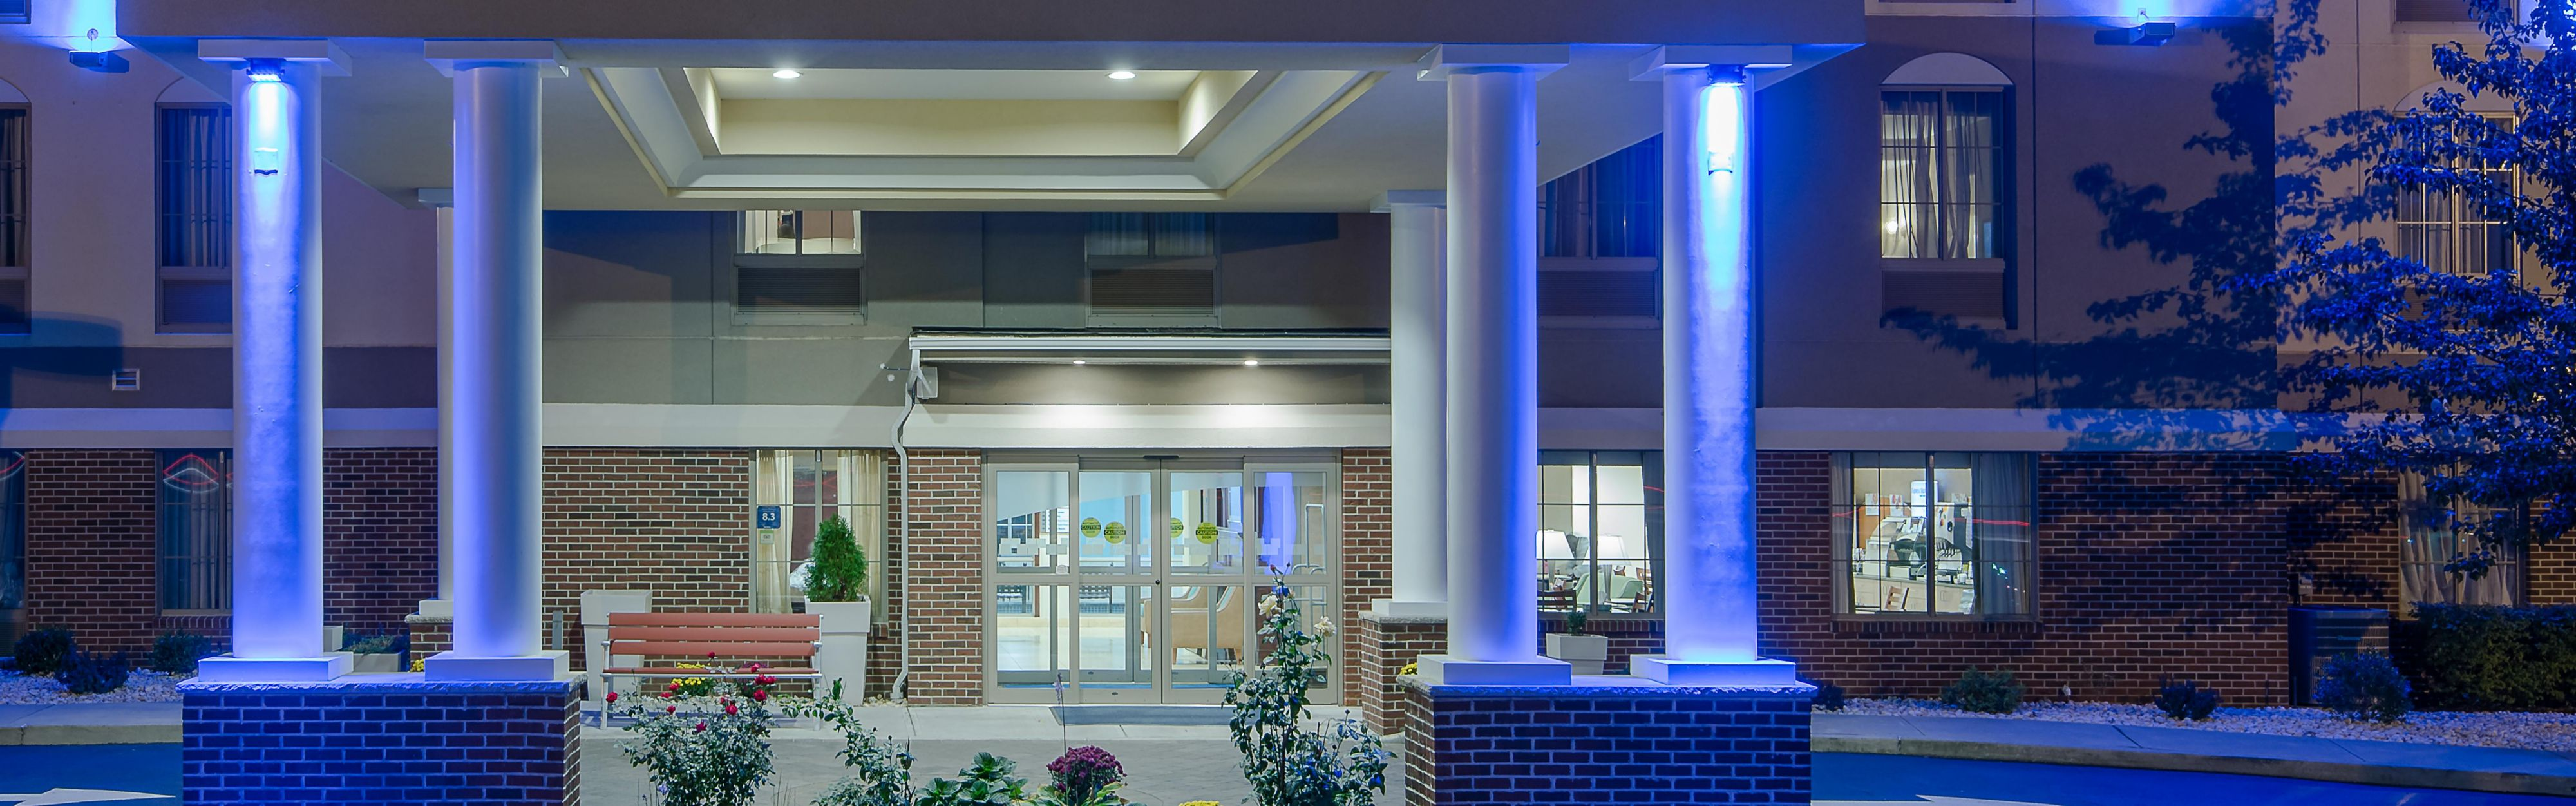 Holiday Inn Express Haskell-Wayne Area image 0